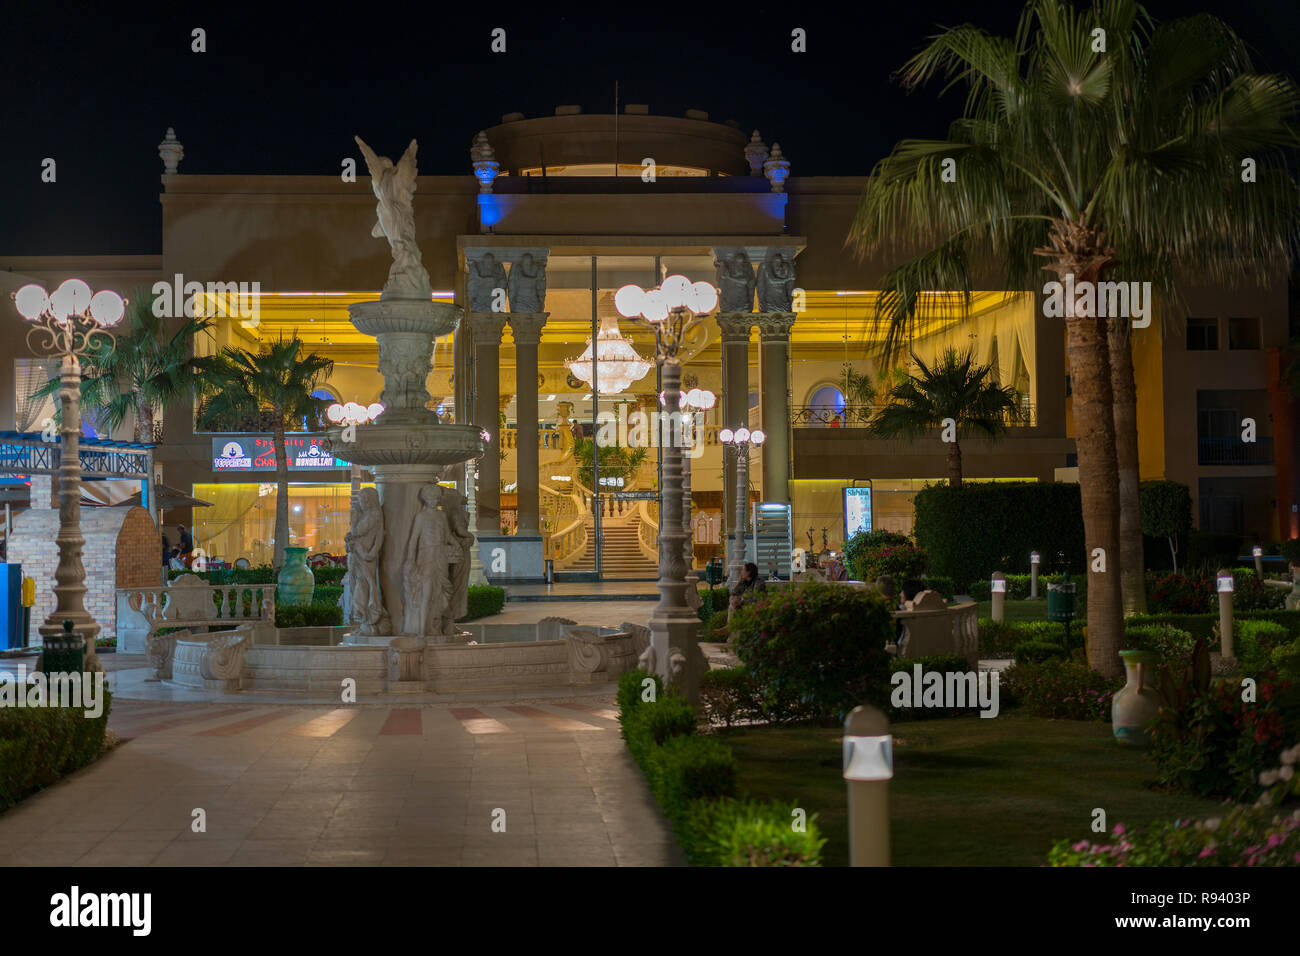 Hurghada Egypt November 19 2018 Luxury Resort With Pool At Night View Hotel Outdoor Landscape With Pool Night Pool Side Of Rich Hotel Stock Photo Alamy